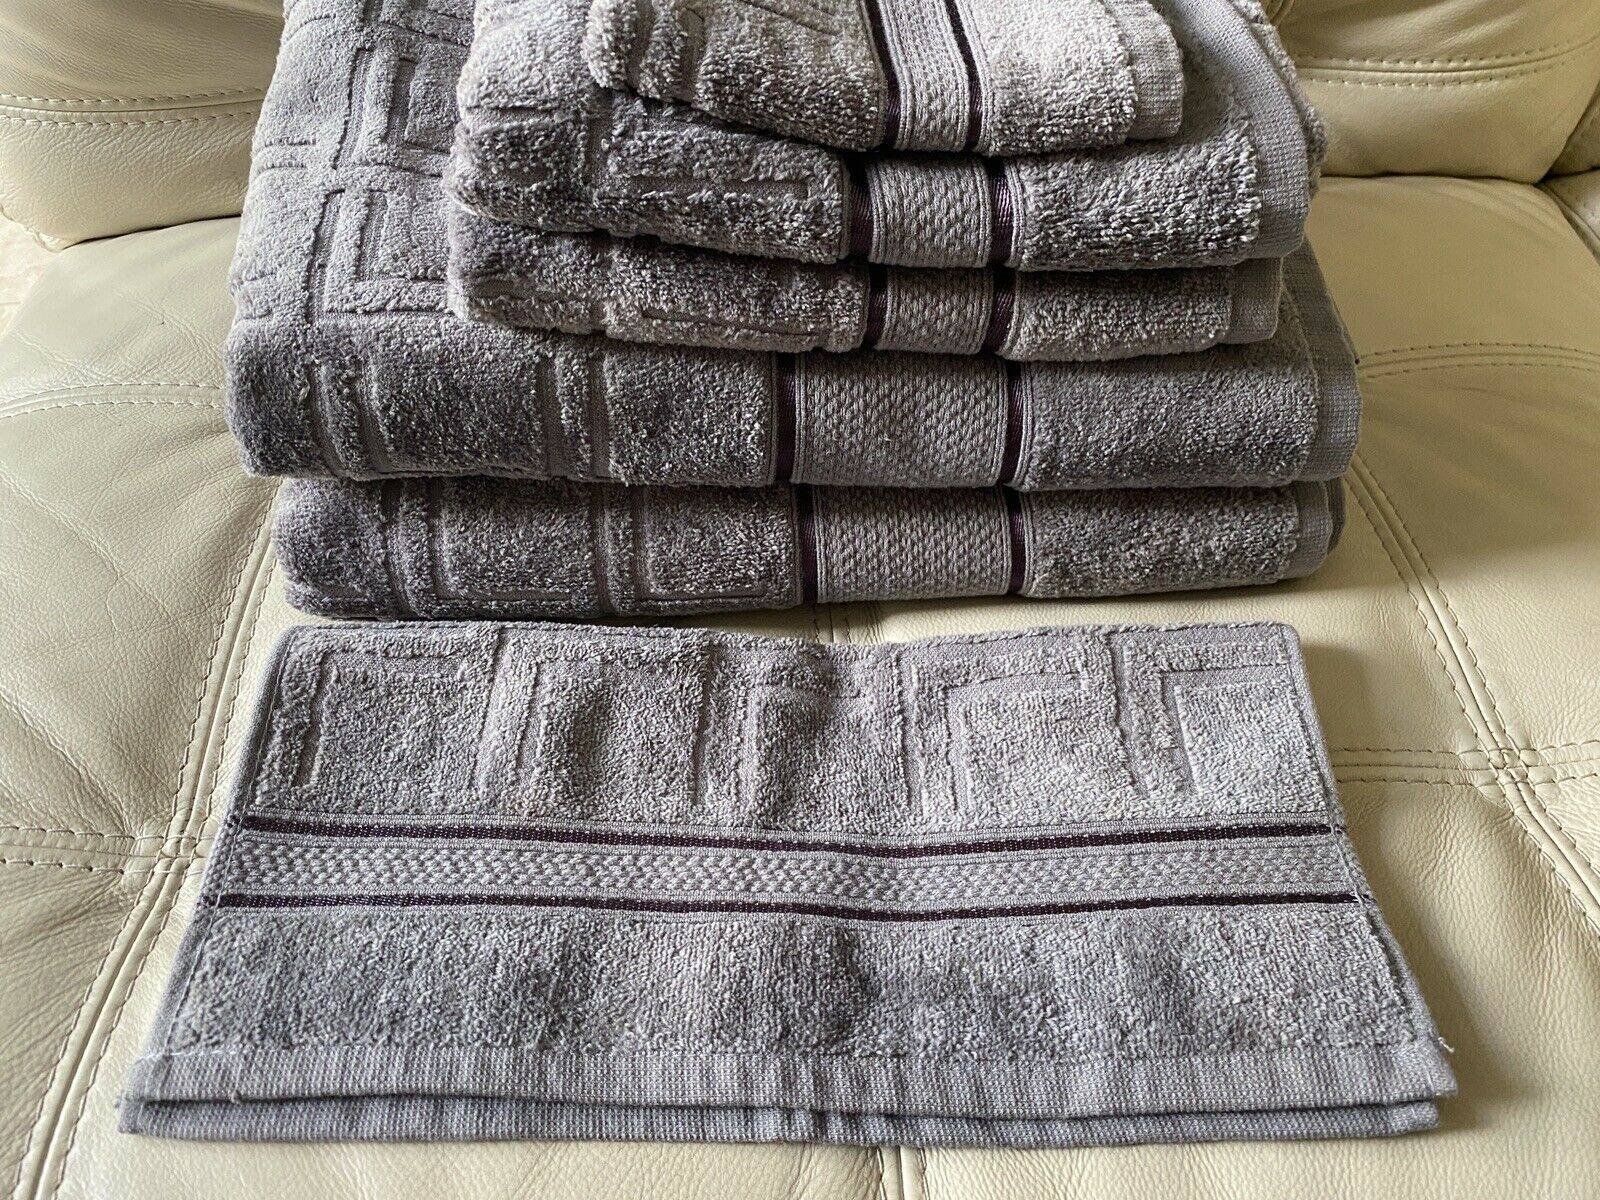 *NEW!* Hotel Diamond Collection Set of 6 Towels 100% Cotton Grey